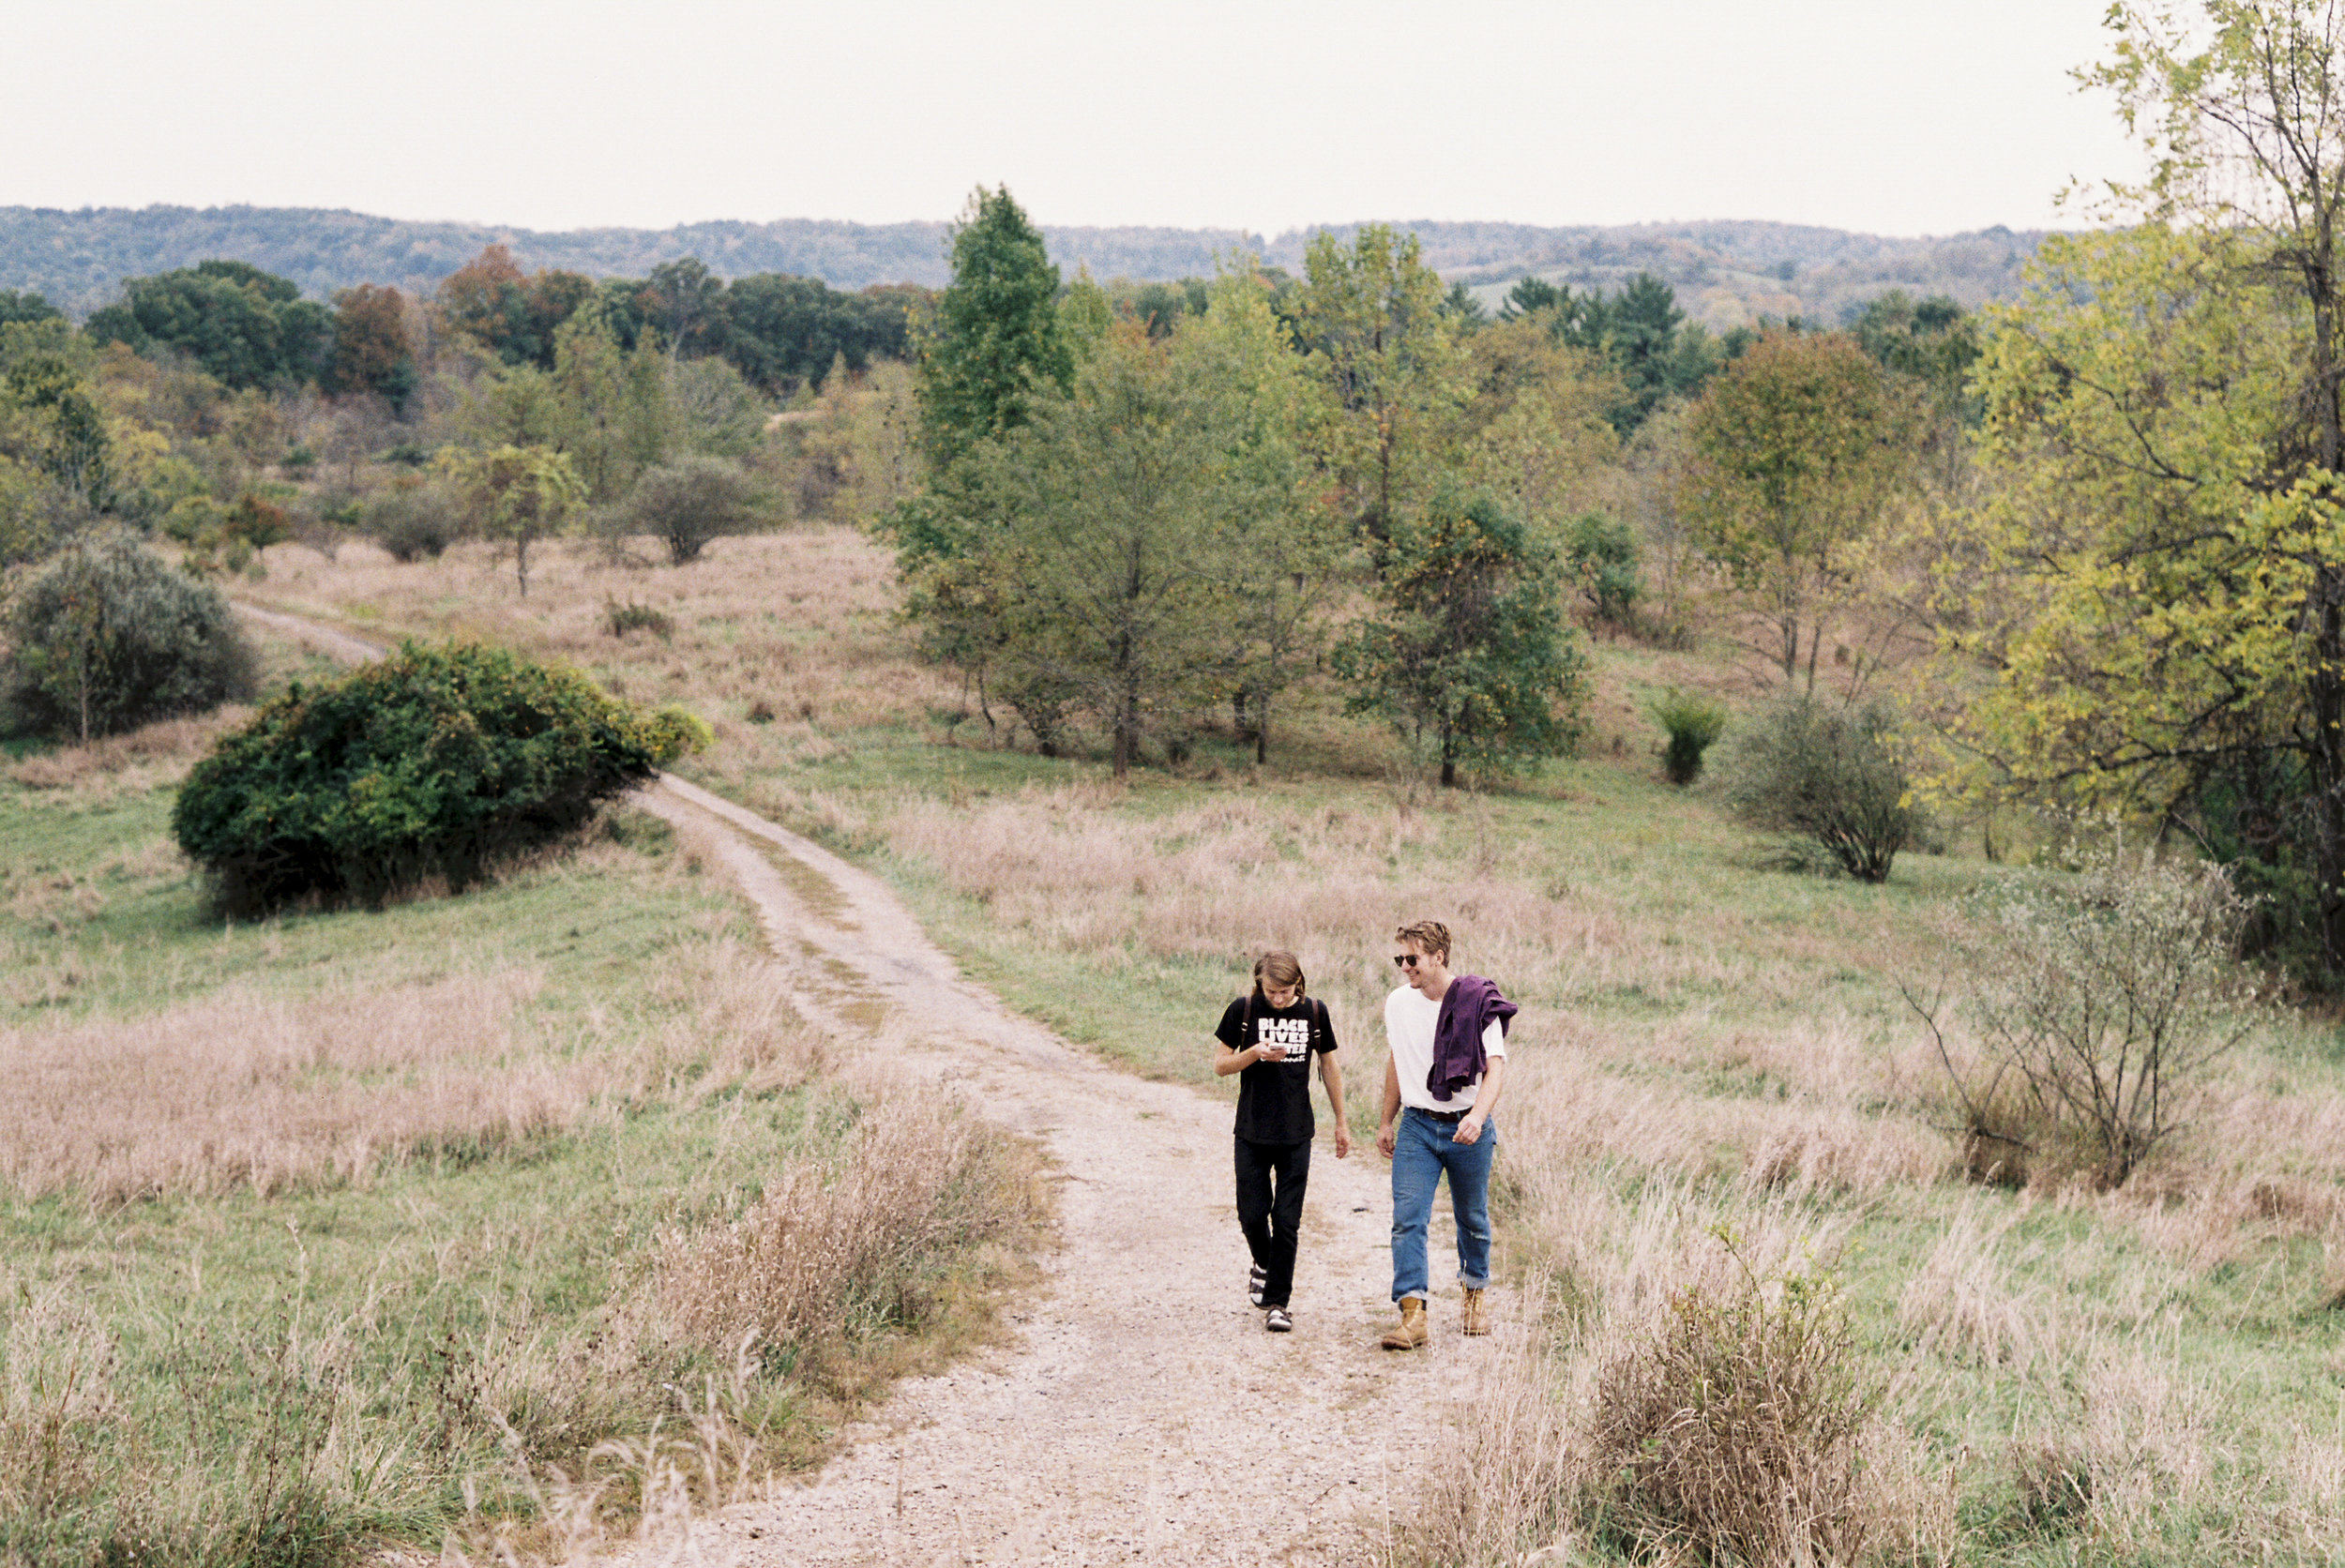 Daniel Kingston and Michael Mayberry along the trail to Radar Hill. Athens, OH